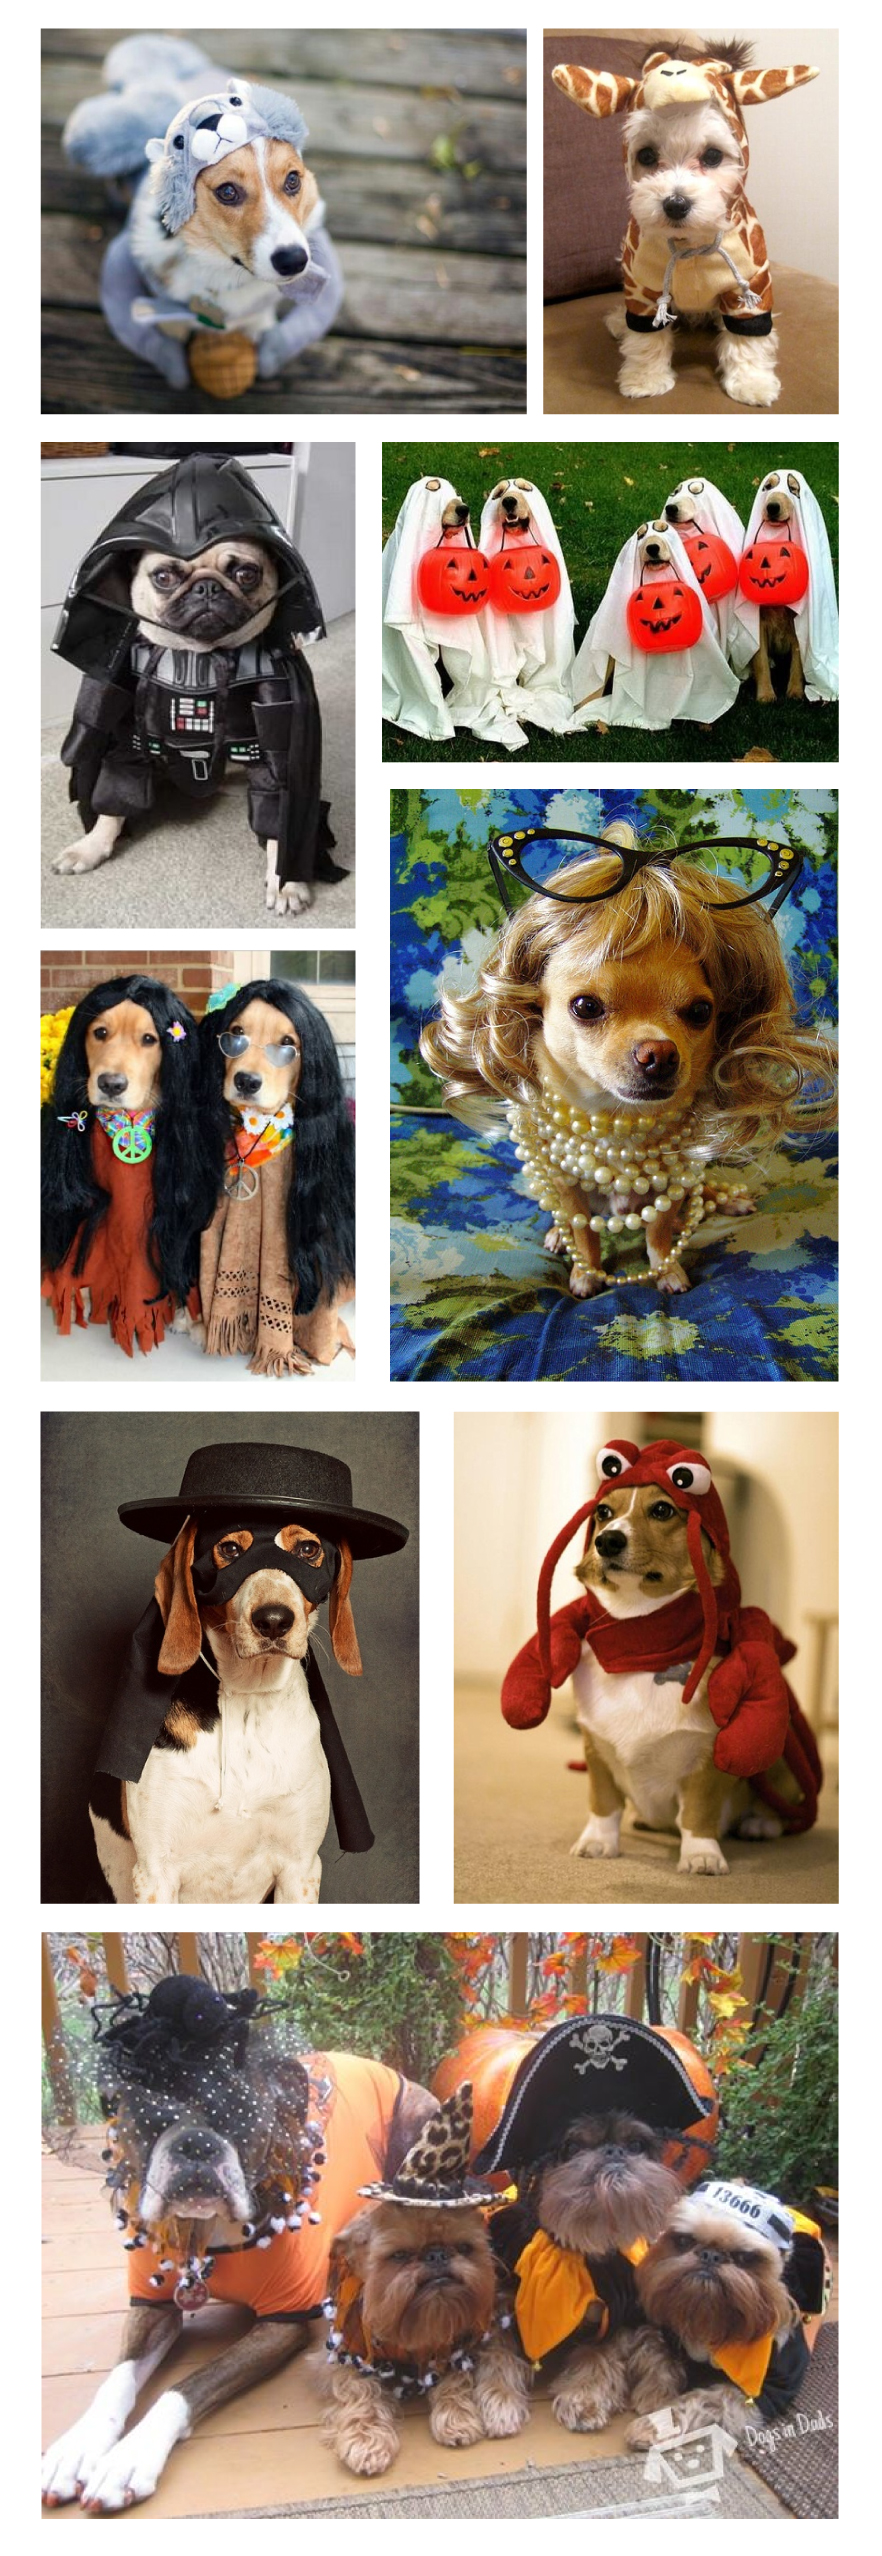 halloweendogs2.jpg